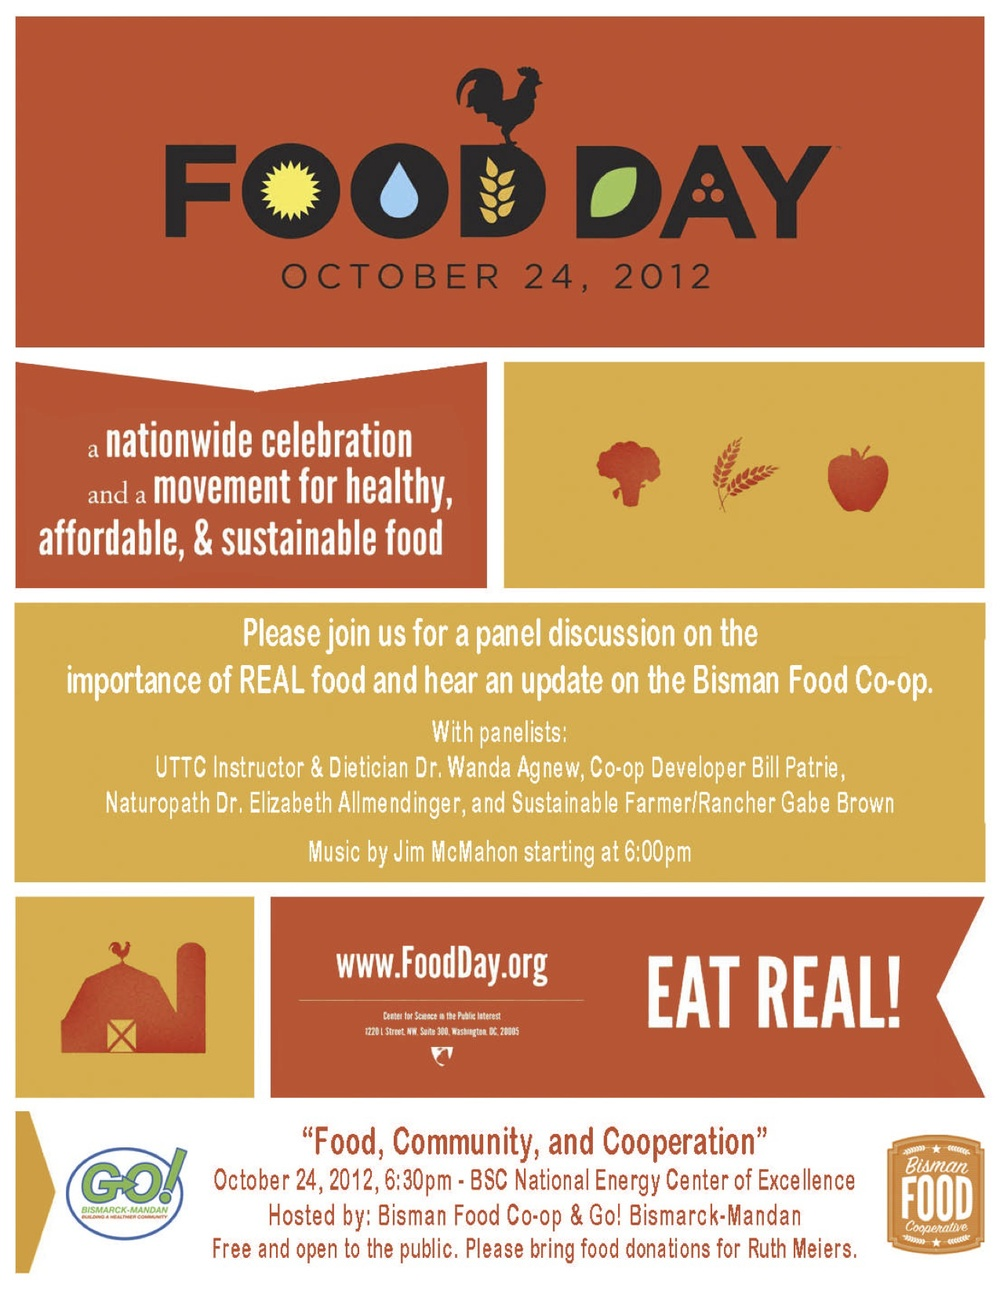 Food Day 2012